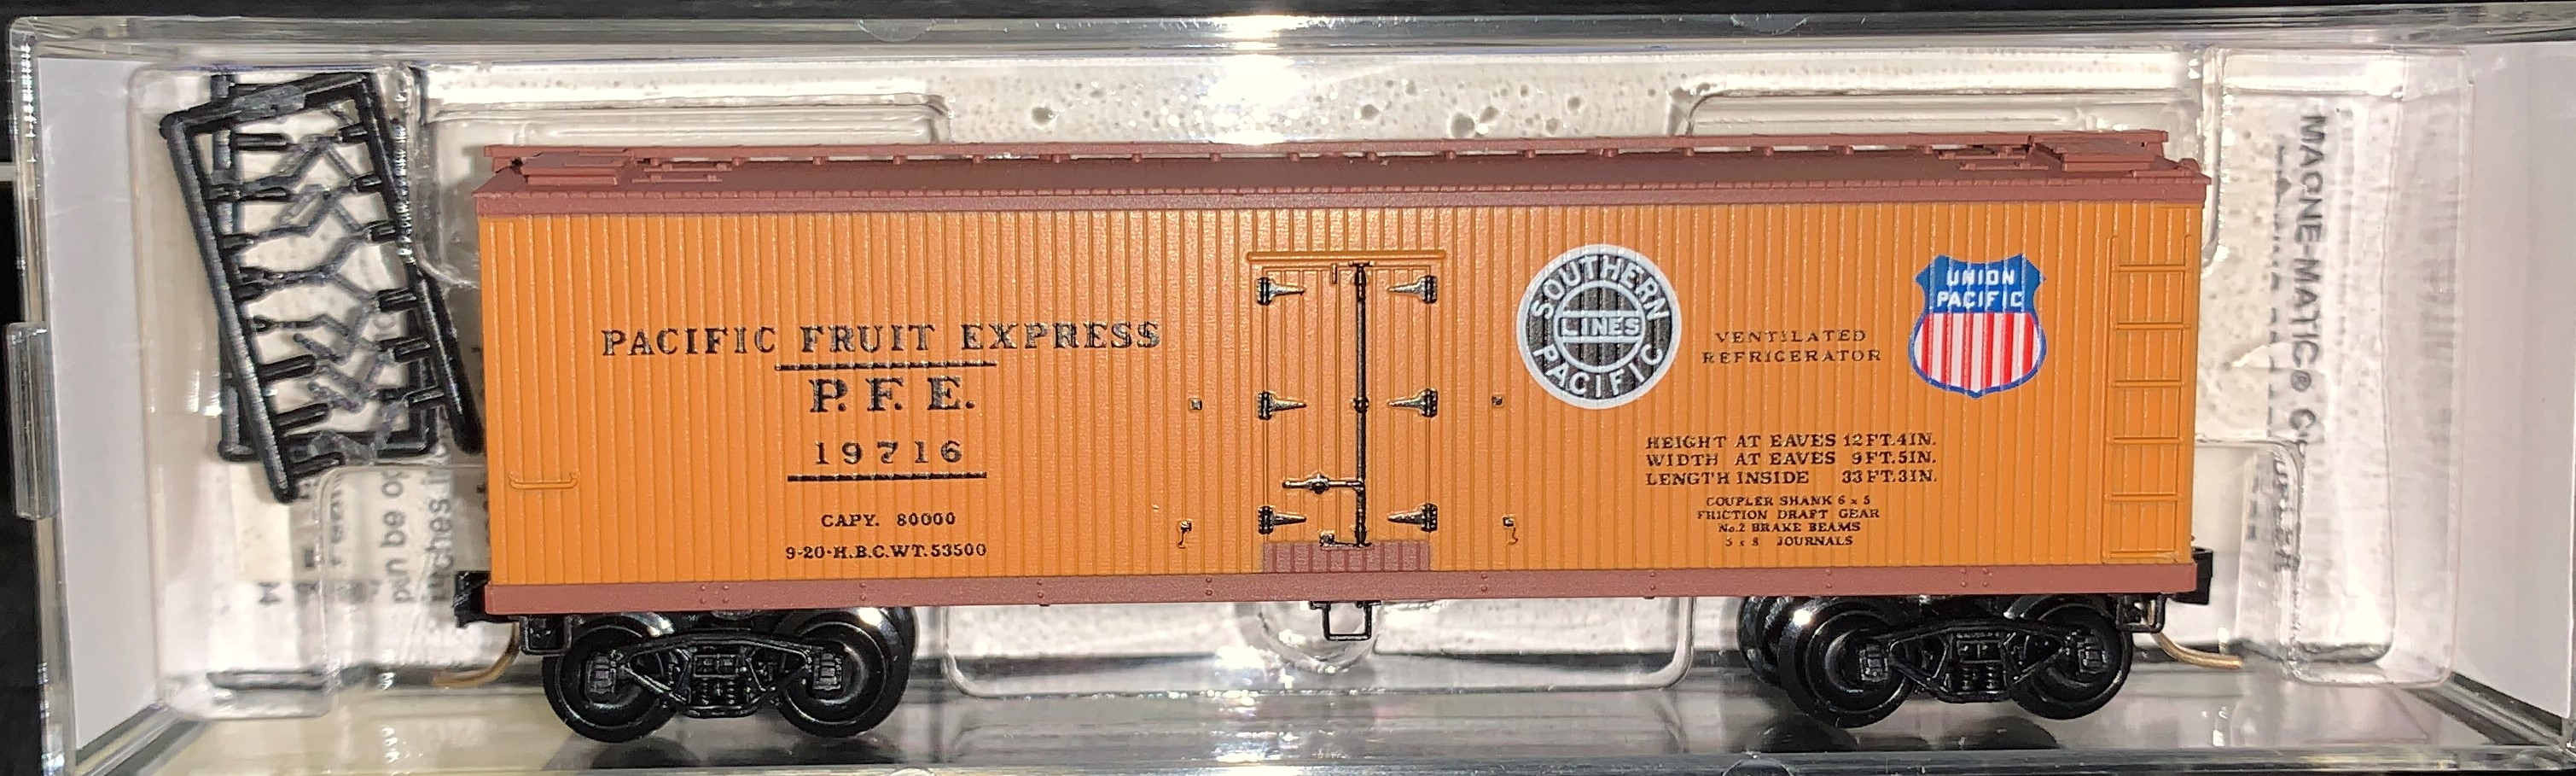 N Scale - Micro-Trains - 47060 - Reefer, Ice, Wood - Pacific Fruit Express - 19716